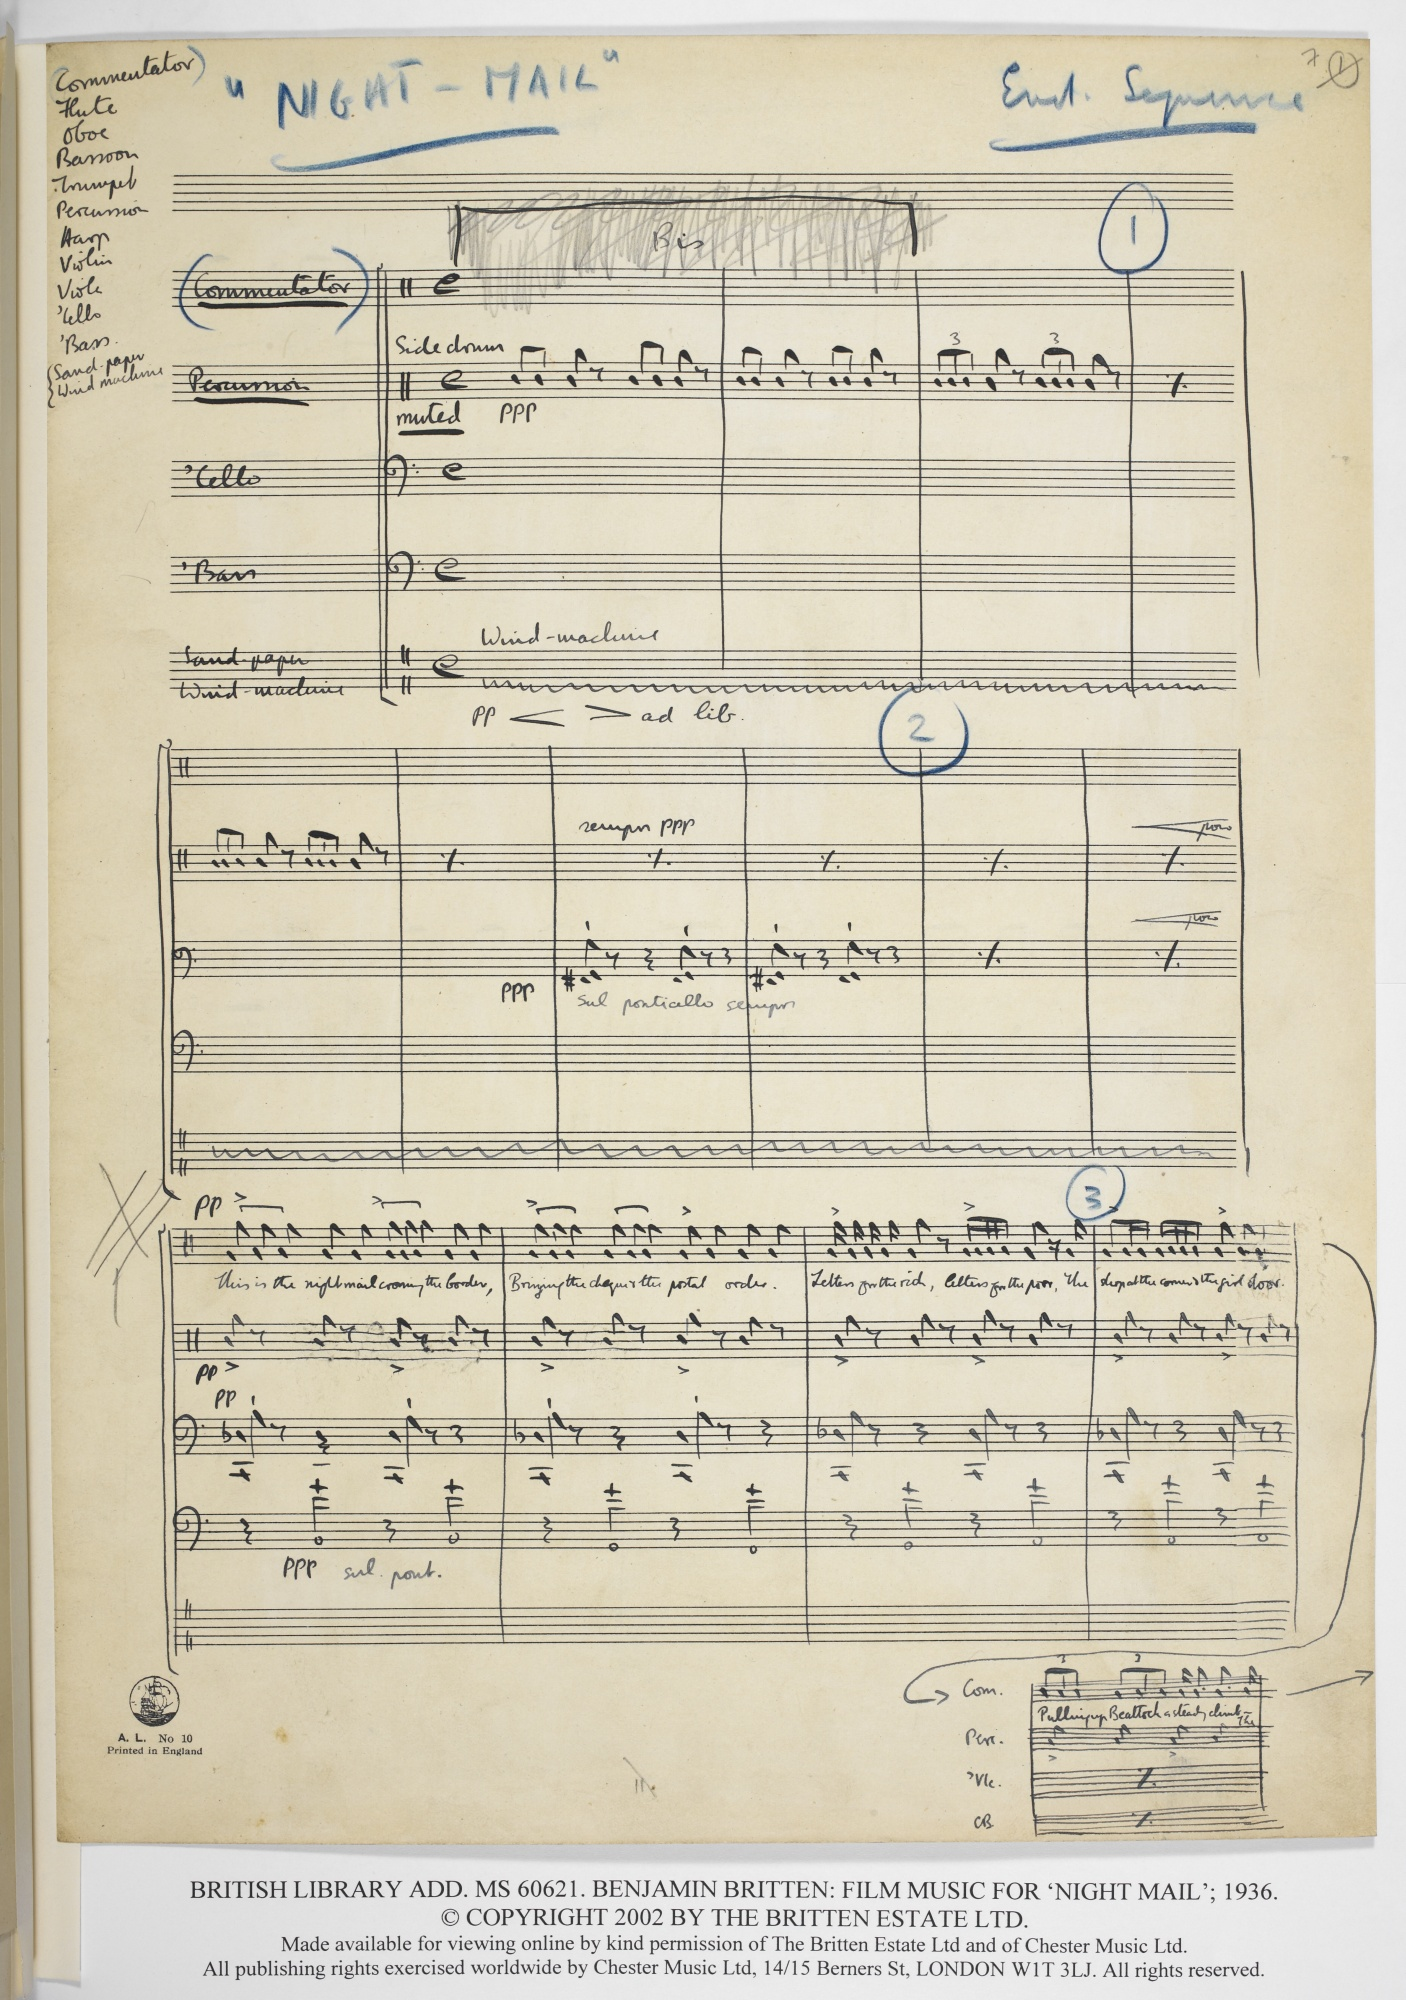 Benjamin Britten: Music for the documentary film Night Mail (1936), Add MS 60621